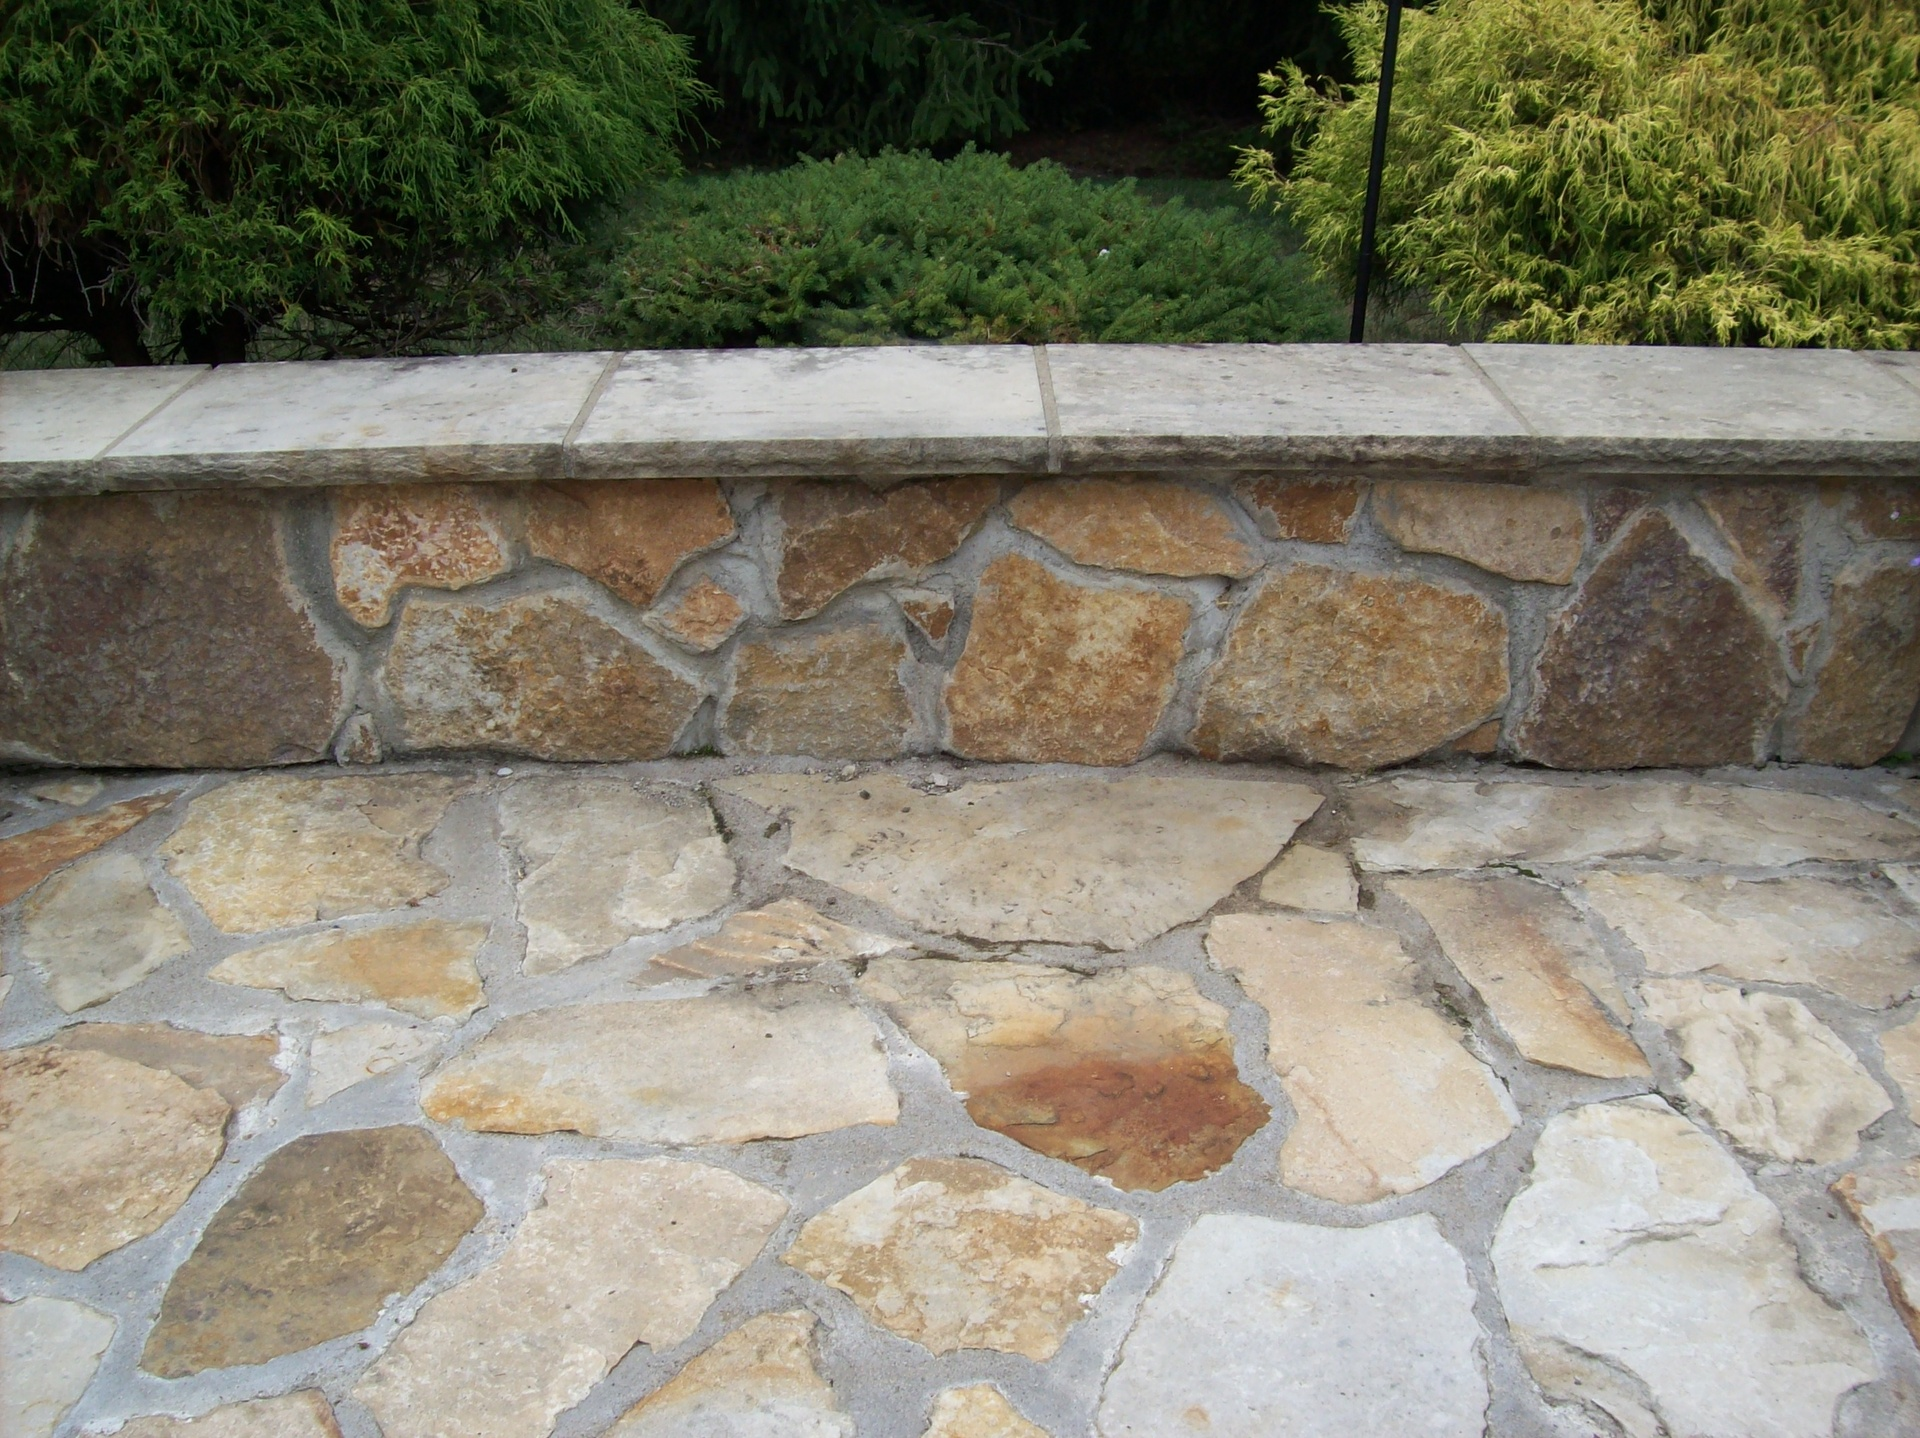 Sand Stone Patio with Wall